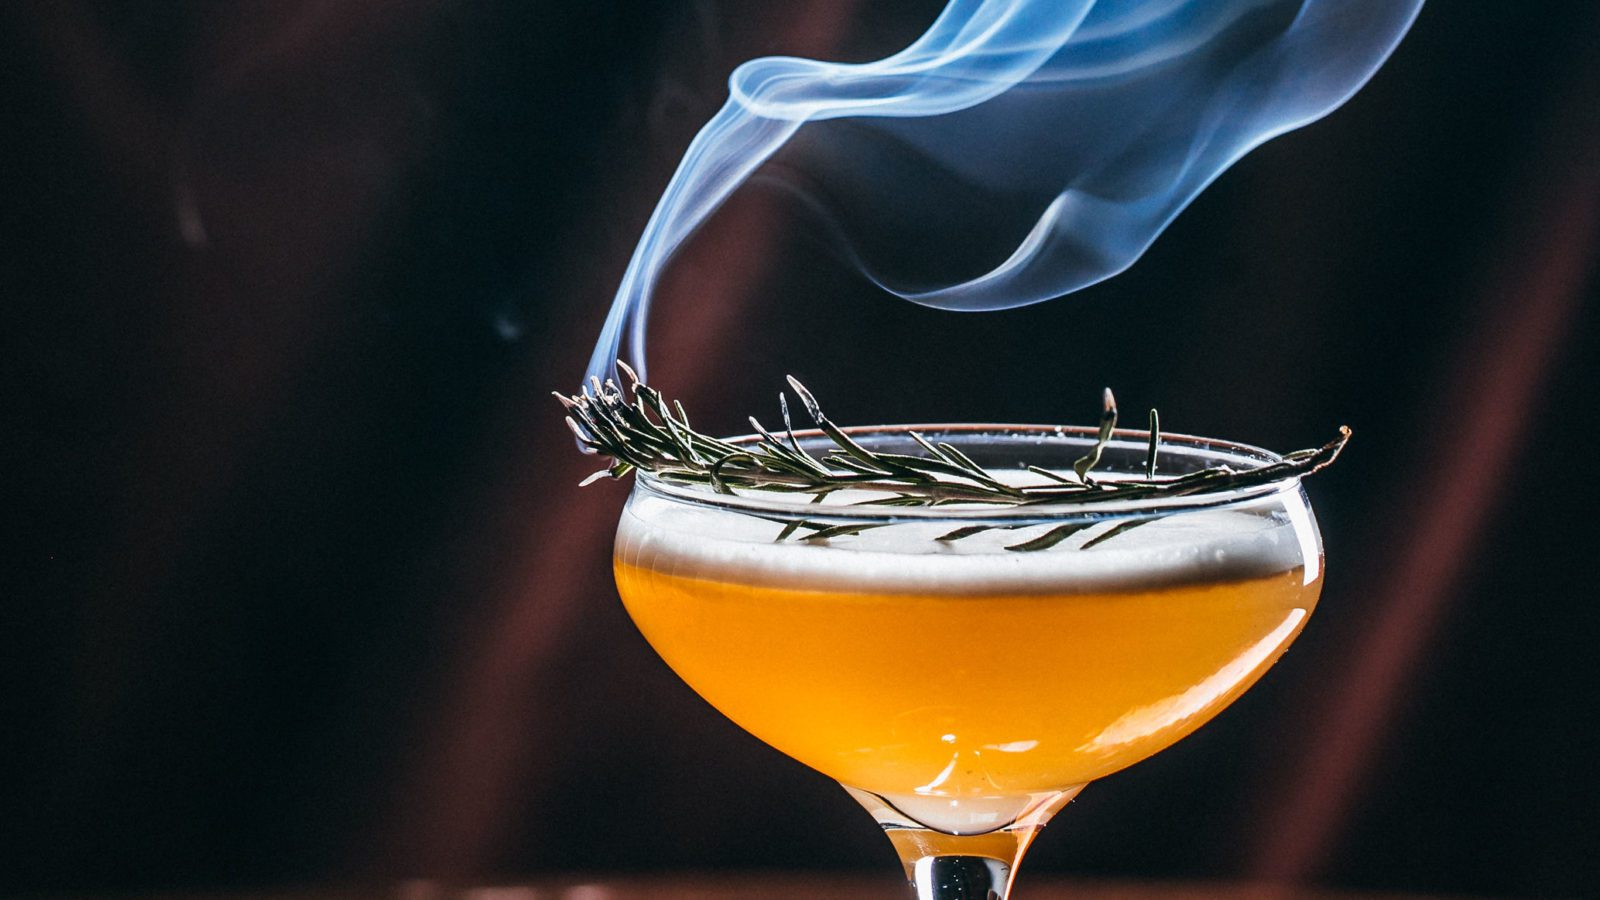 Cocktail in coupe glass with smoke rising from top.